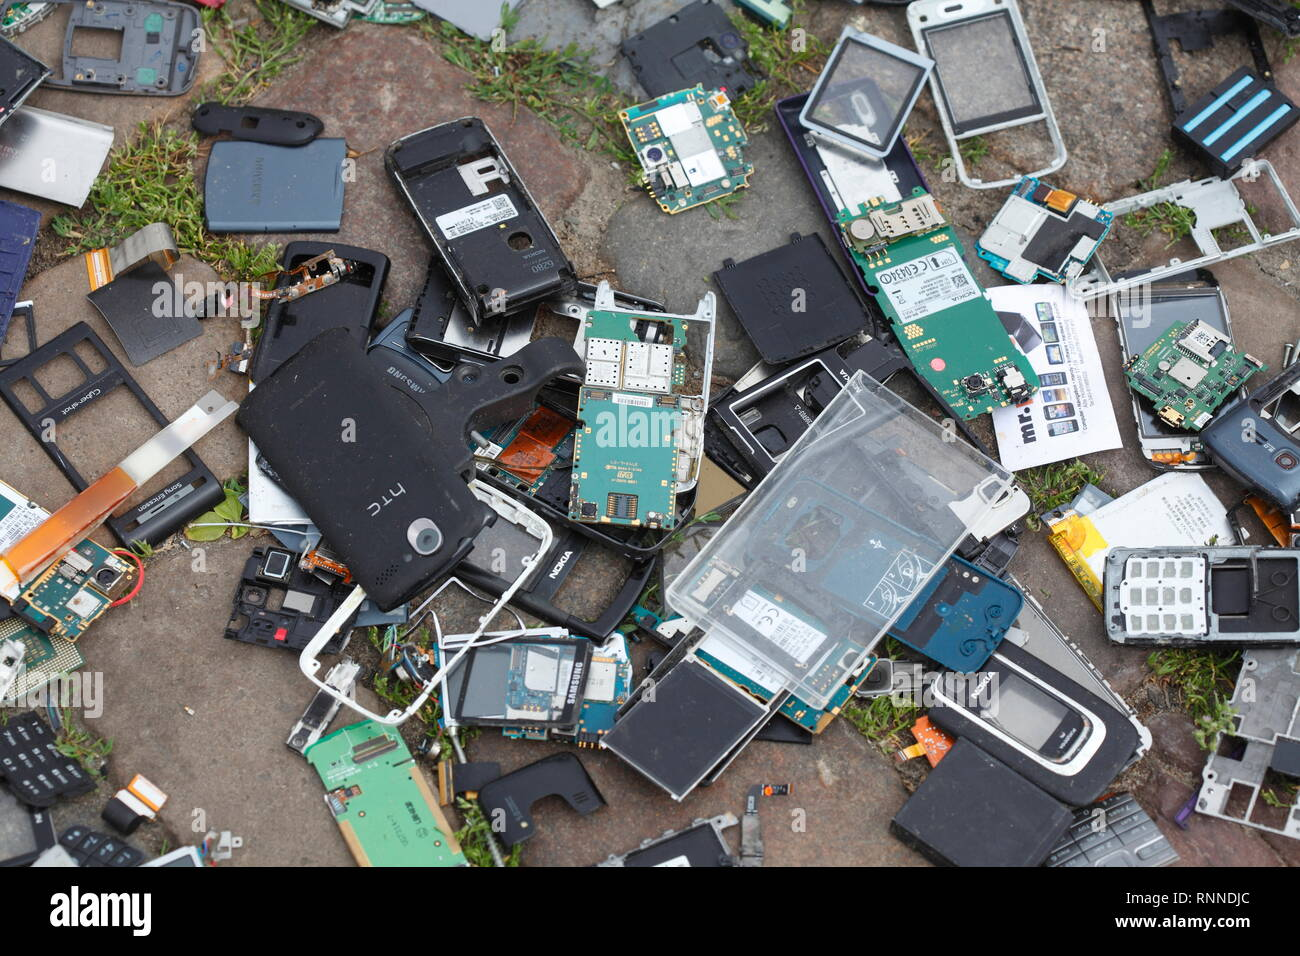 Electronic waste, old broken smartphones lying on the floor, Germany, Europe I Elektroschrott, alte kaputte Smartphones auf dem Boden liegend, Deutsch Stock Photo